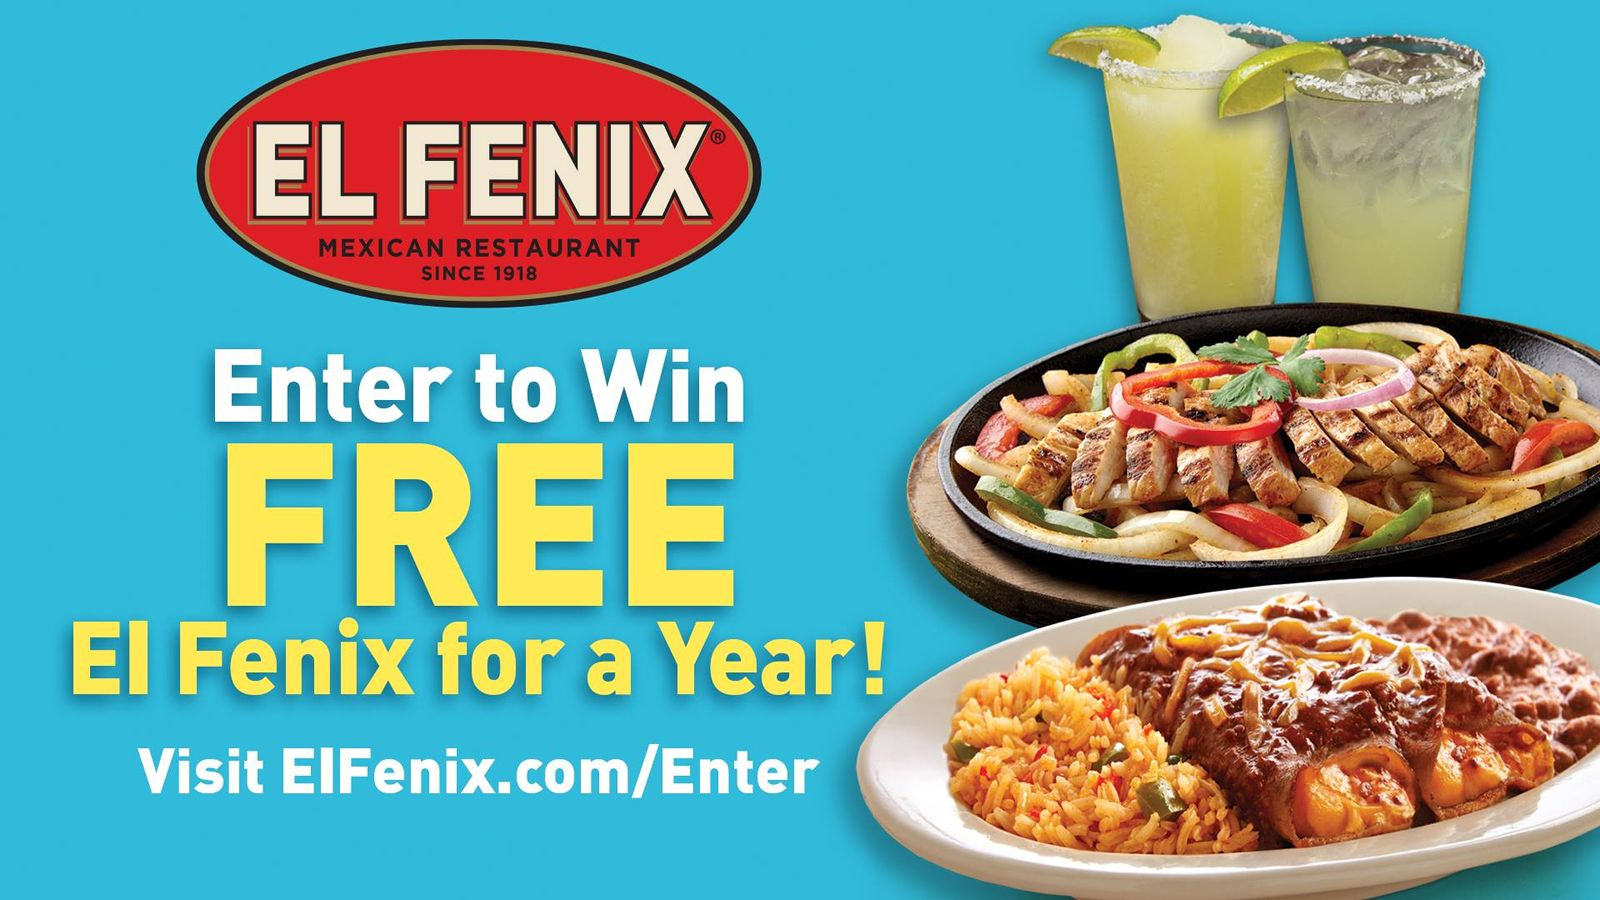 El Fenix Offering Guests the Chance to Win FREE El Fenix for a YEAR